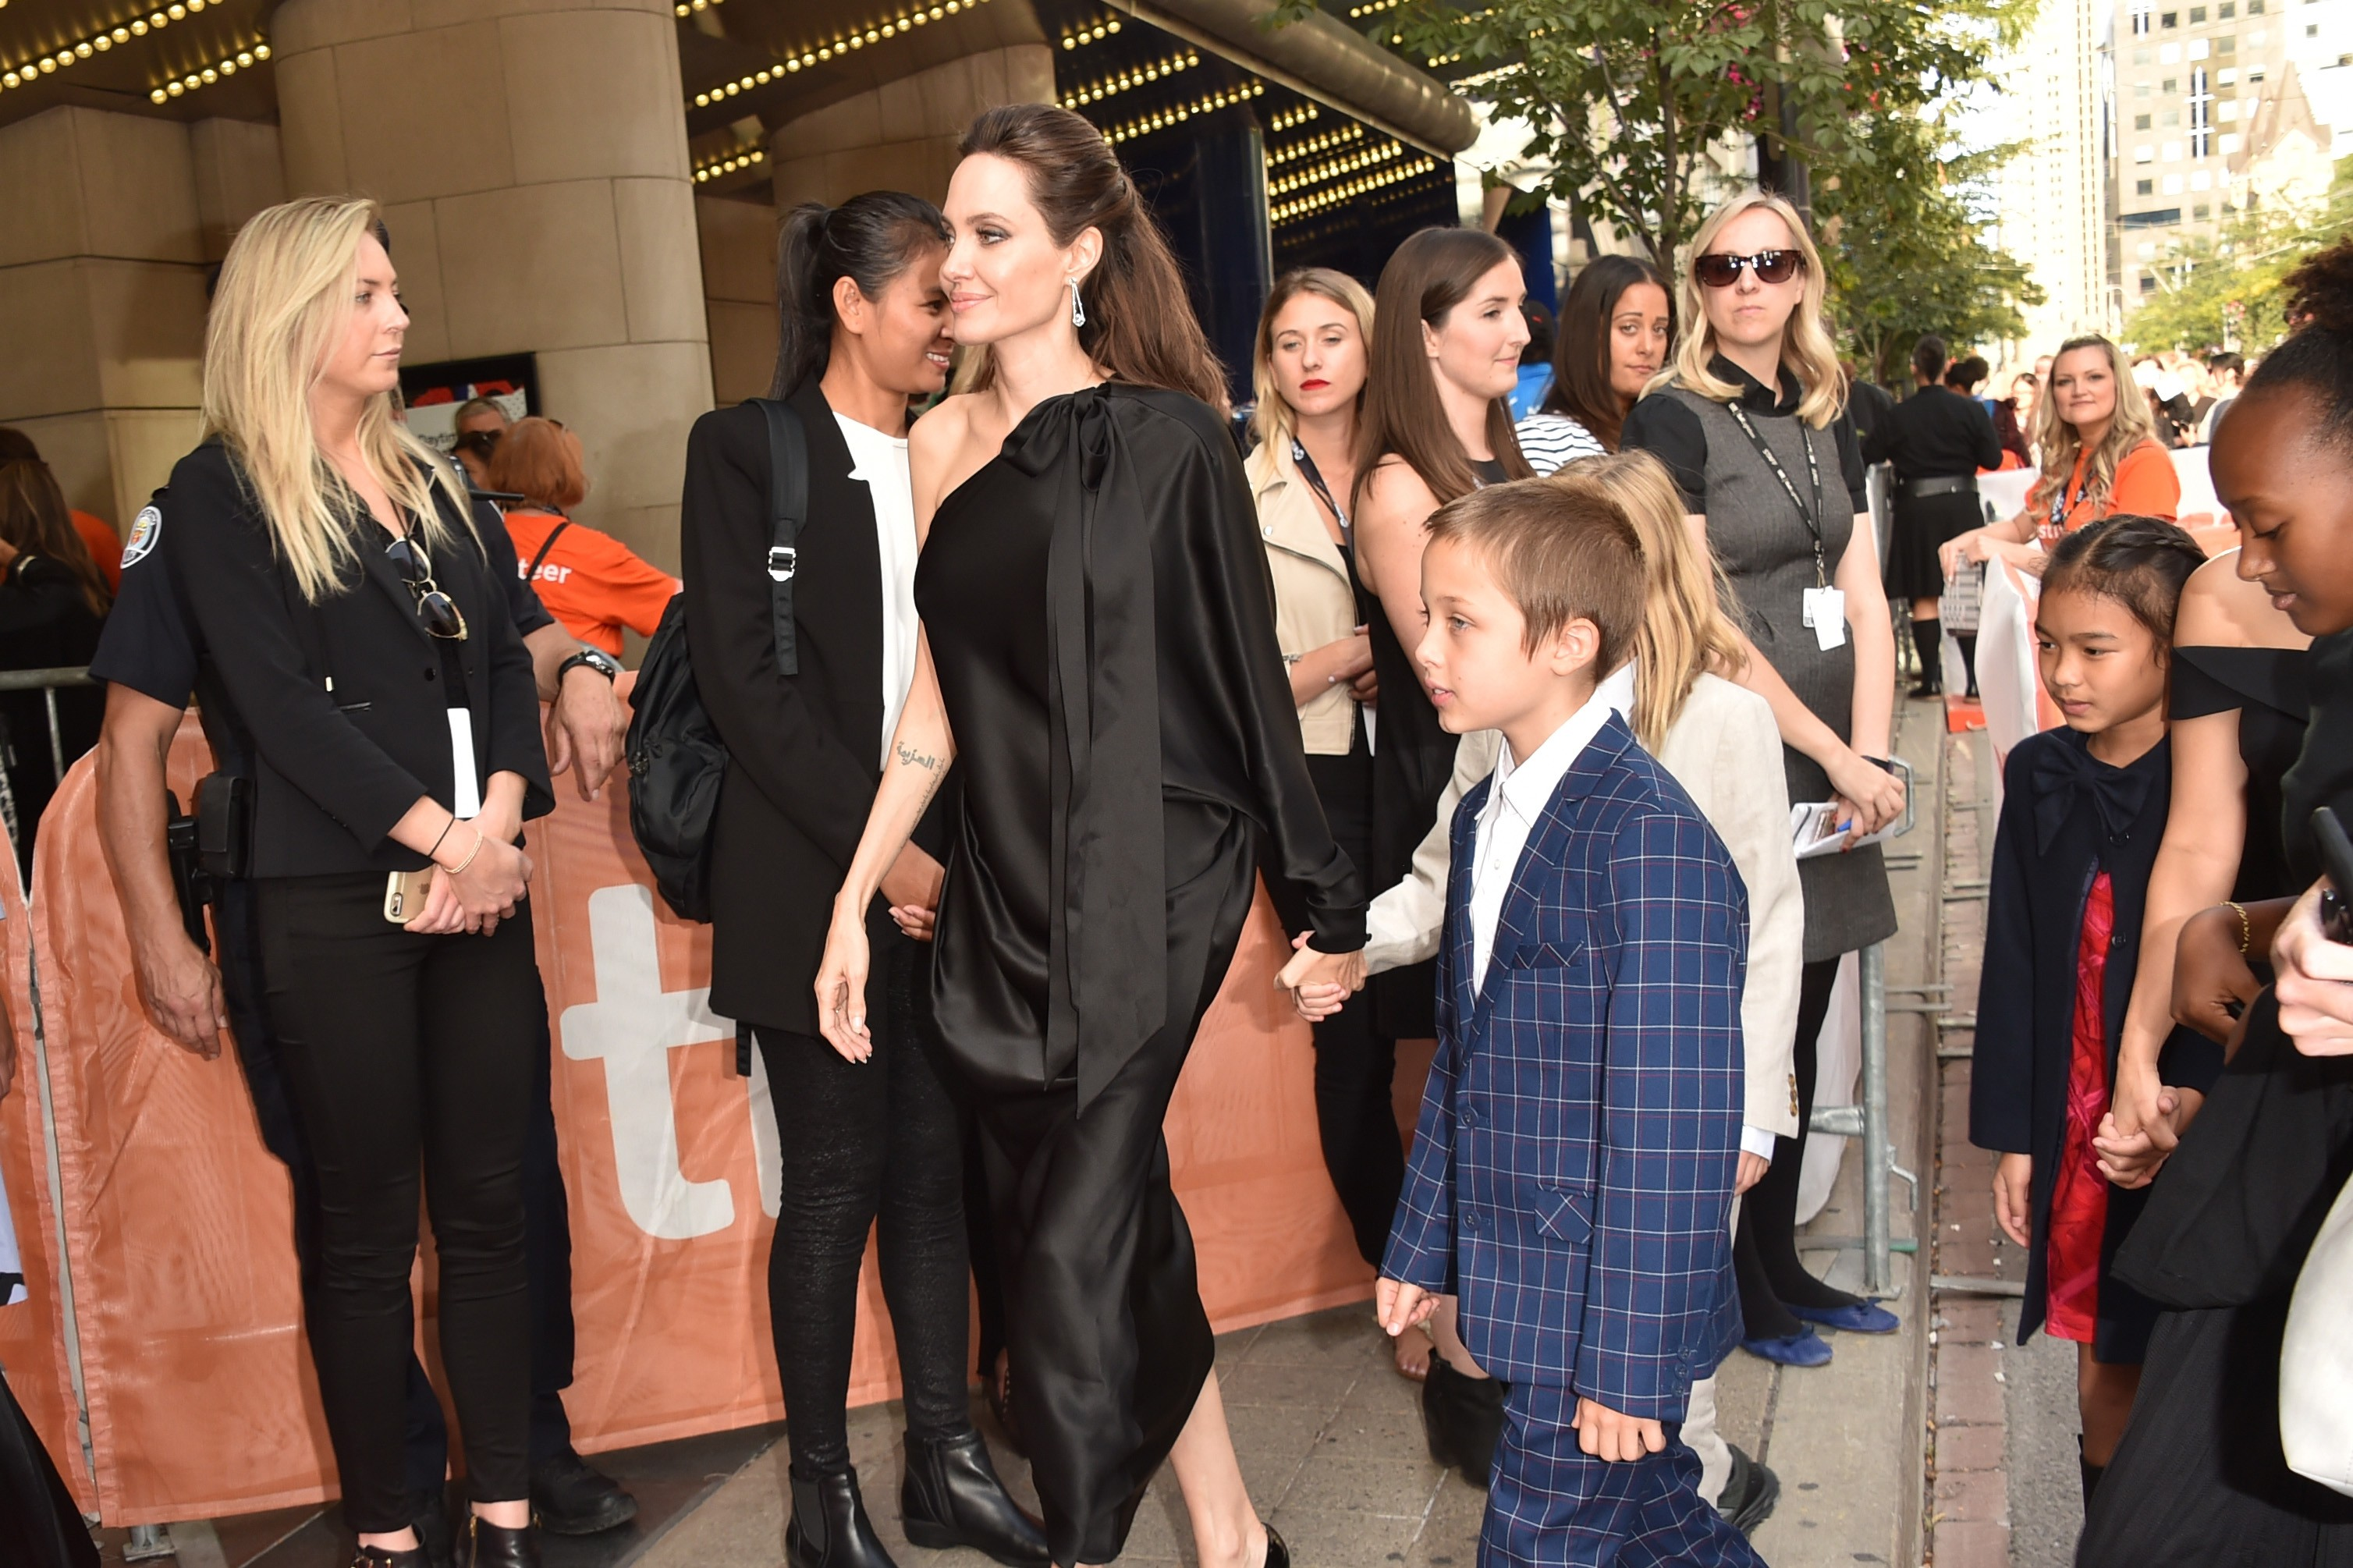 """TORONTO, ON - SEPTEMBER 11:  (L-R) Angelina Jolie, Vivienne Jolie-Pitt and Knox Jolie-Pitt attend the """"First They Killed My Father"""" premiere during the 2017 Toronto International Film Festival at Princess of Wales Theatre on September 11, 2017 in Toronto, (Foto: Getty Images)"""